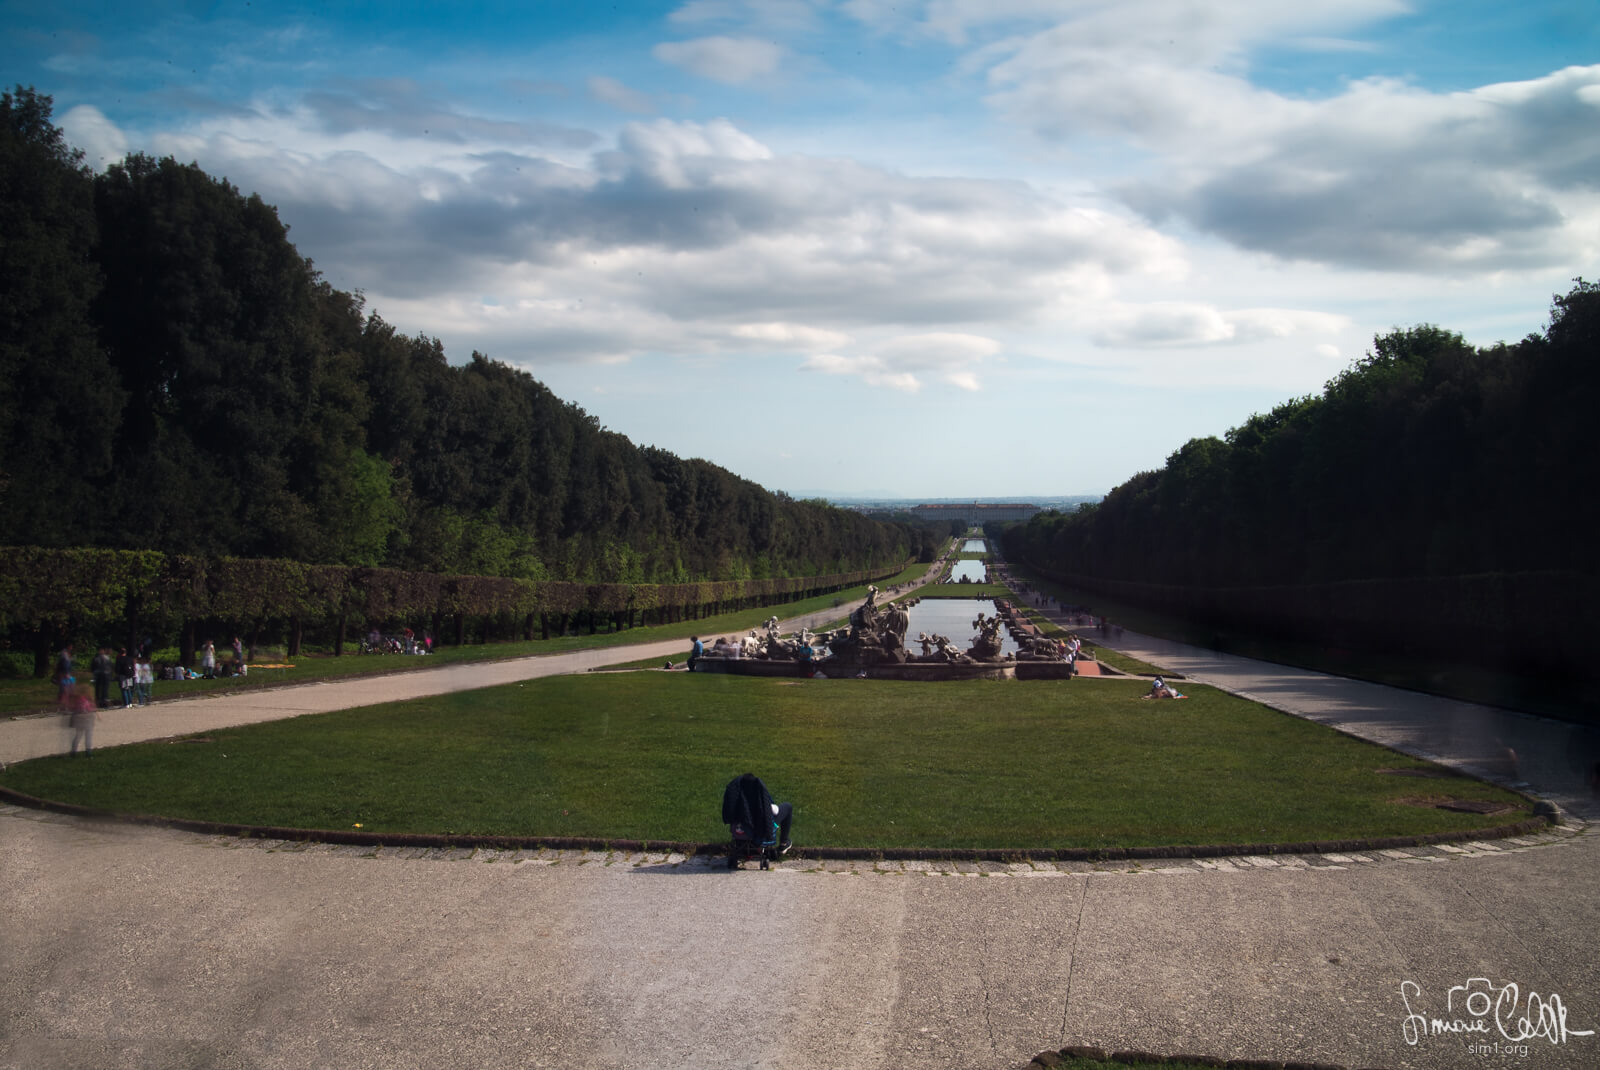 A Day at Reggia of Caserta